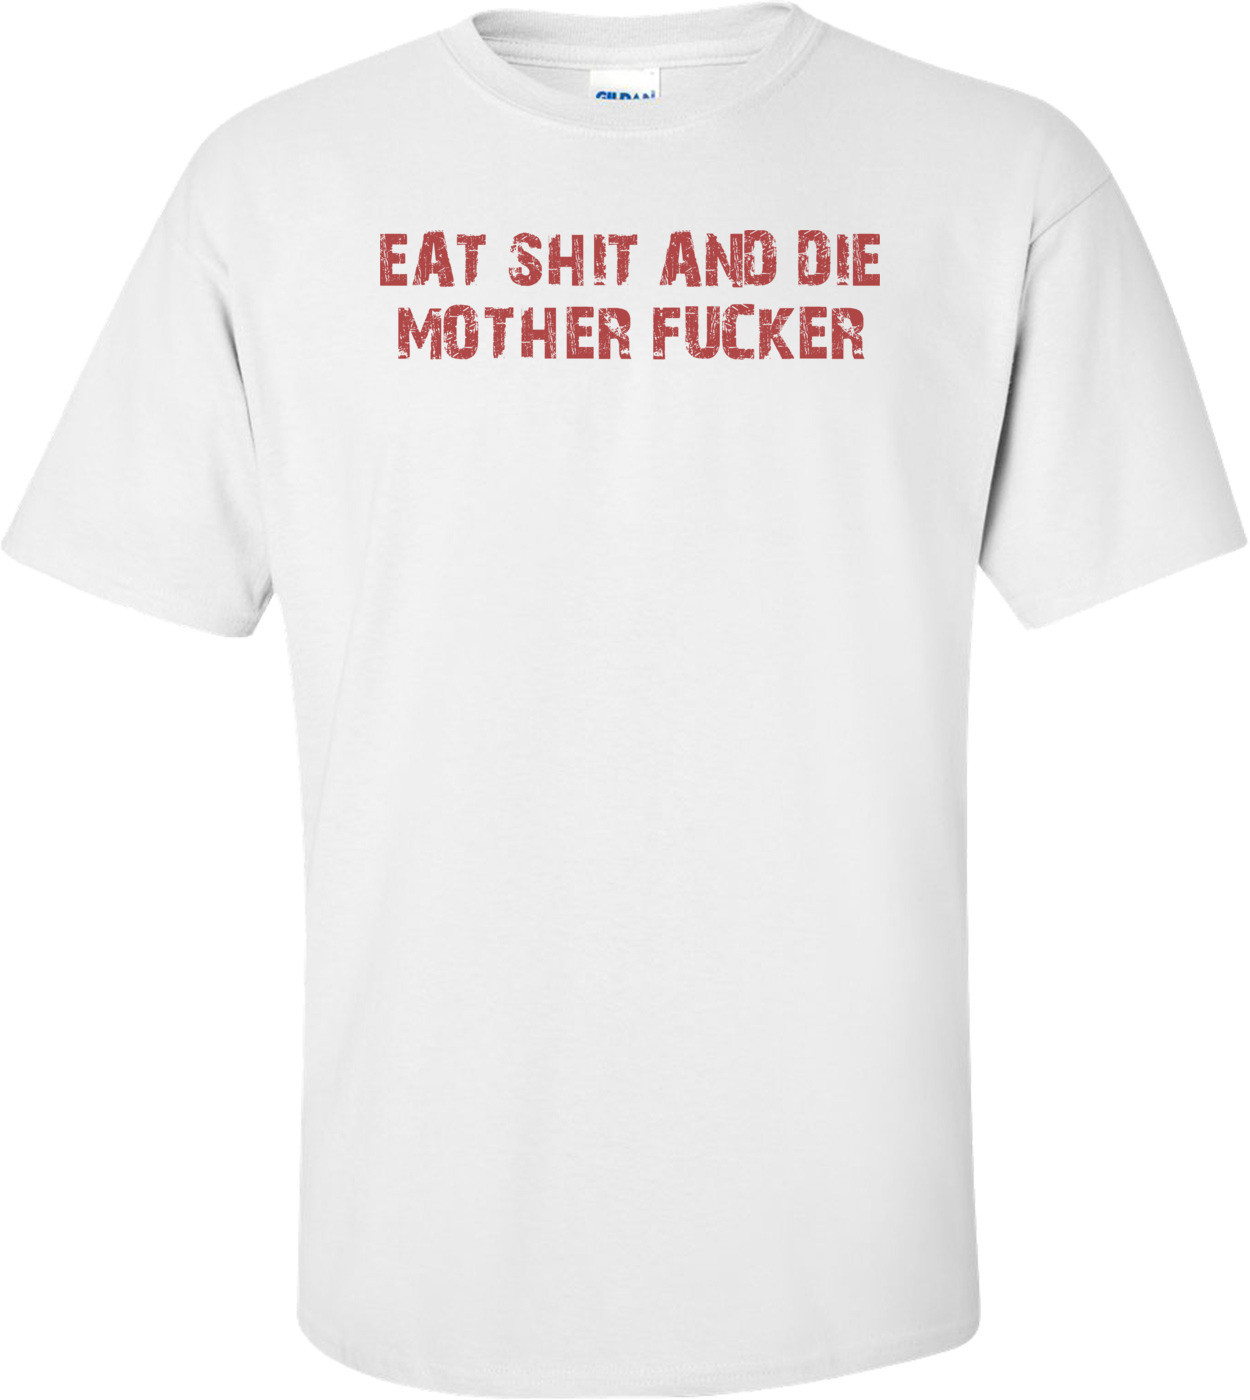 EAT SHIT AND DIE MOTHER FUCKER Shirt